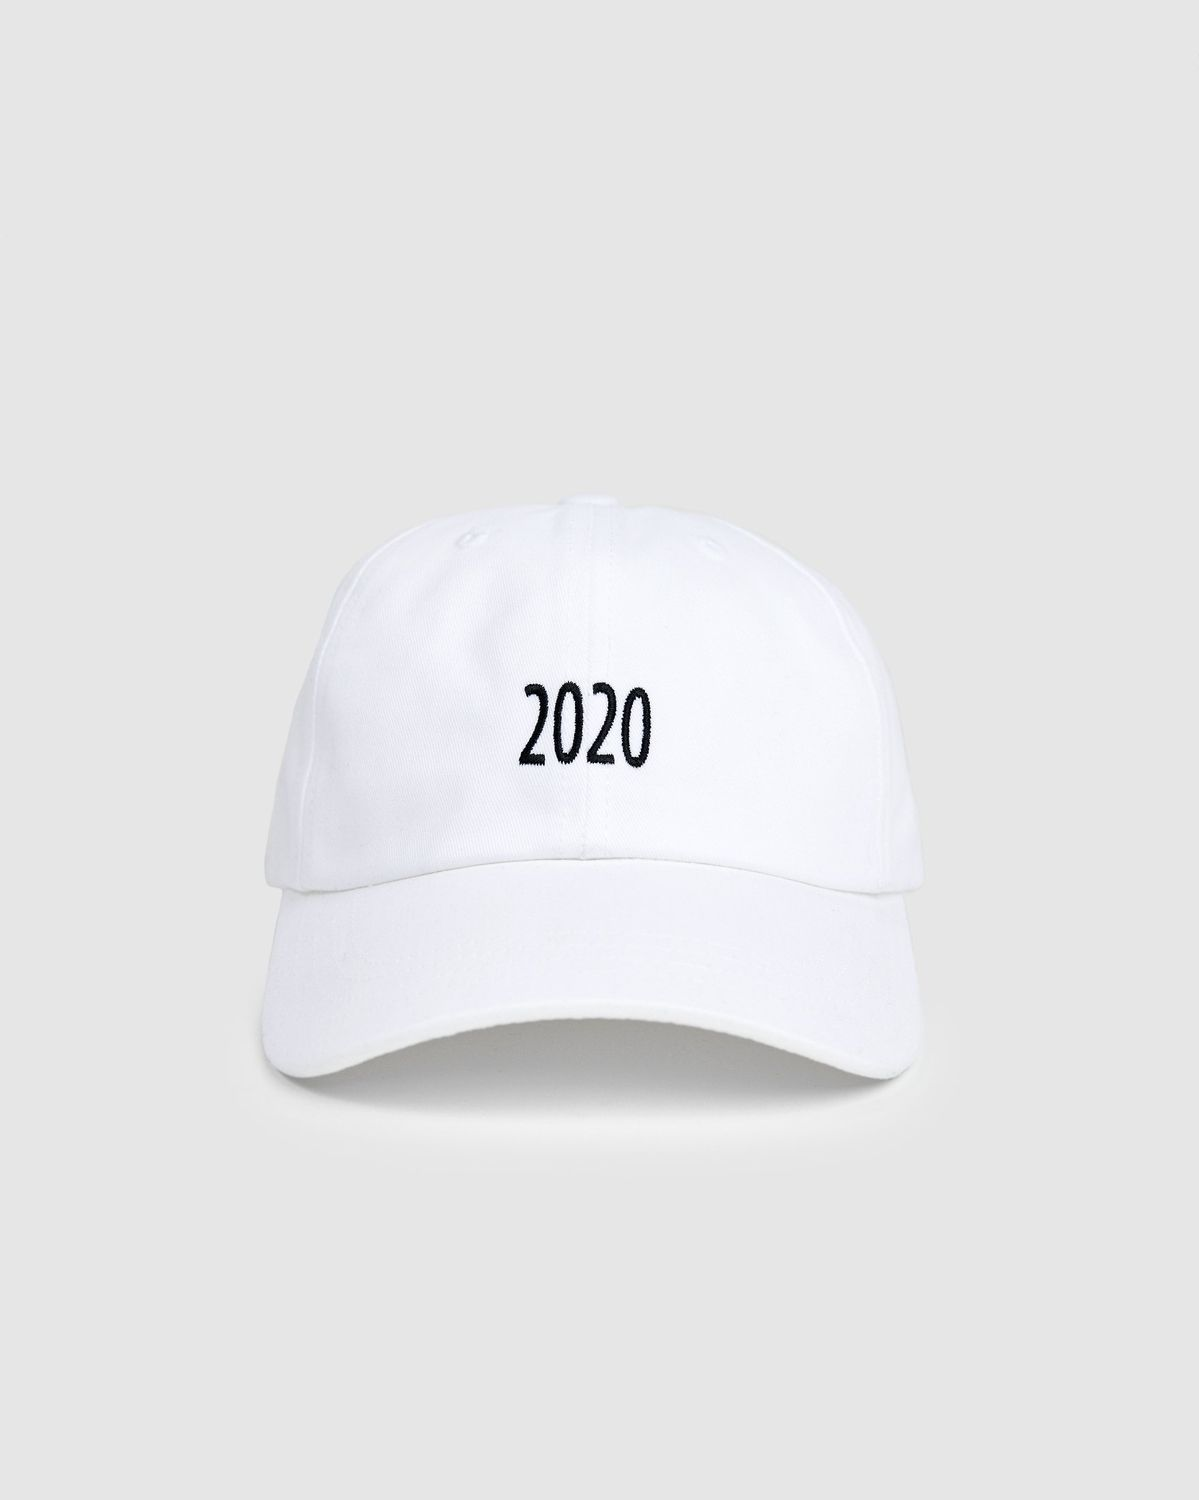 This Never Happened - 2020 Cap White - Image 1